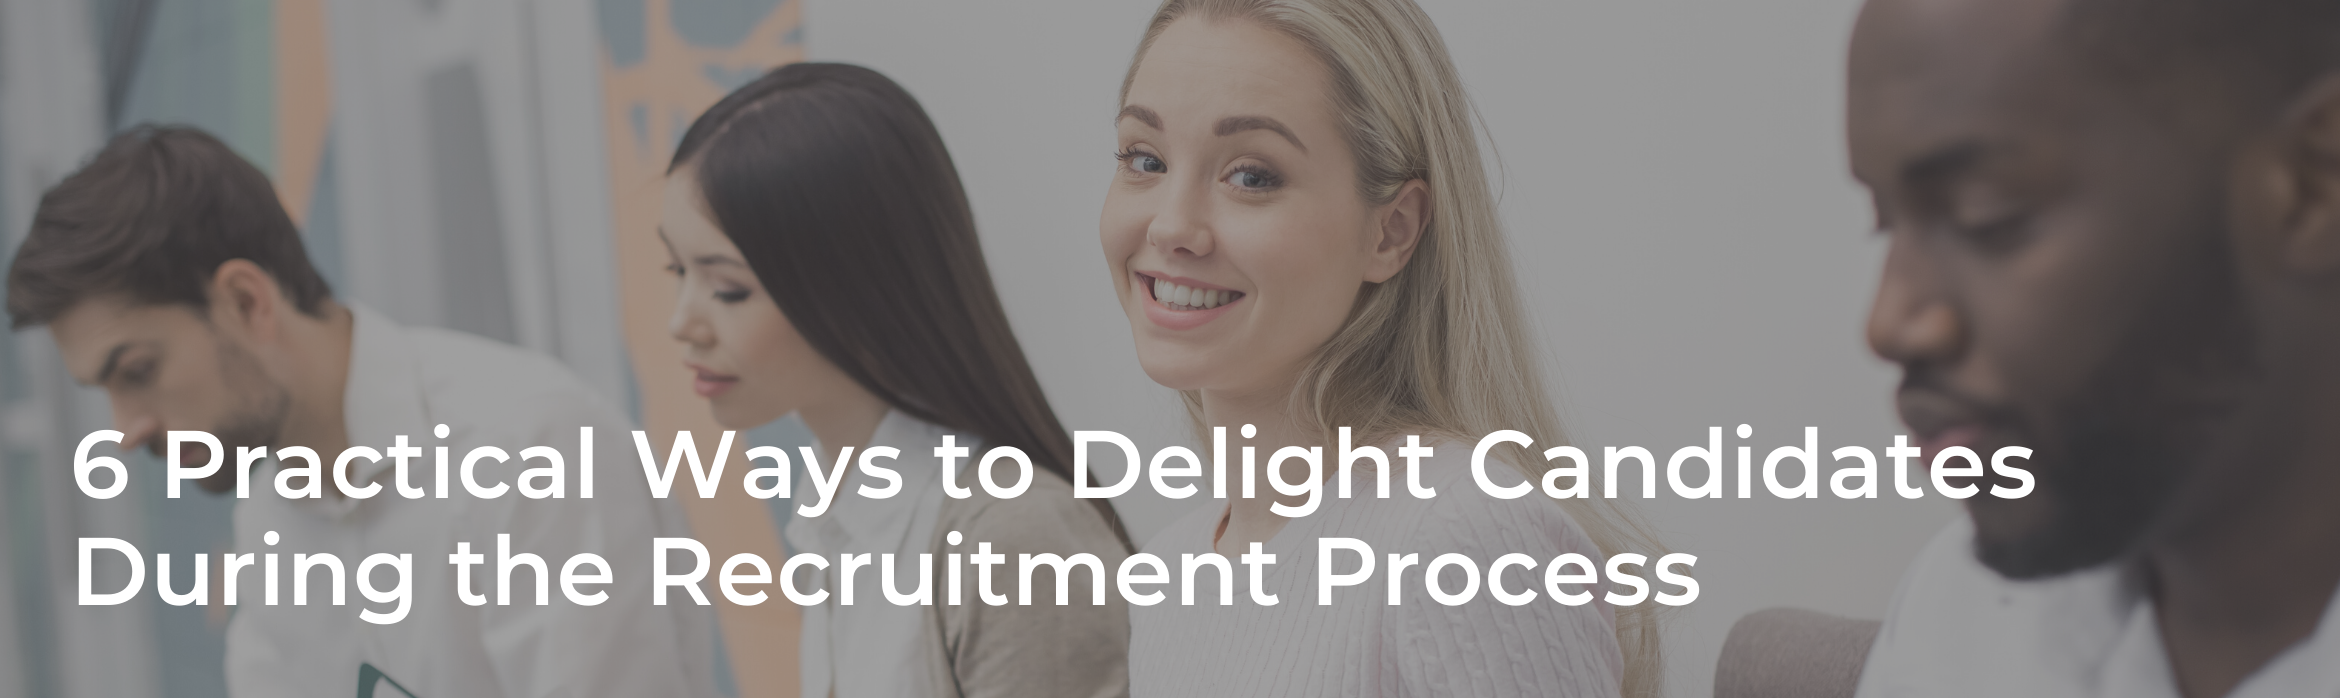 6 Practical Ways to Delight Candidates During the Recruitment Process